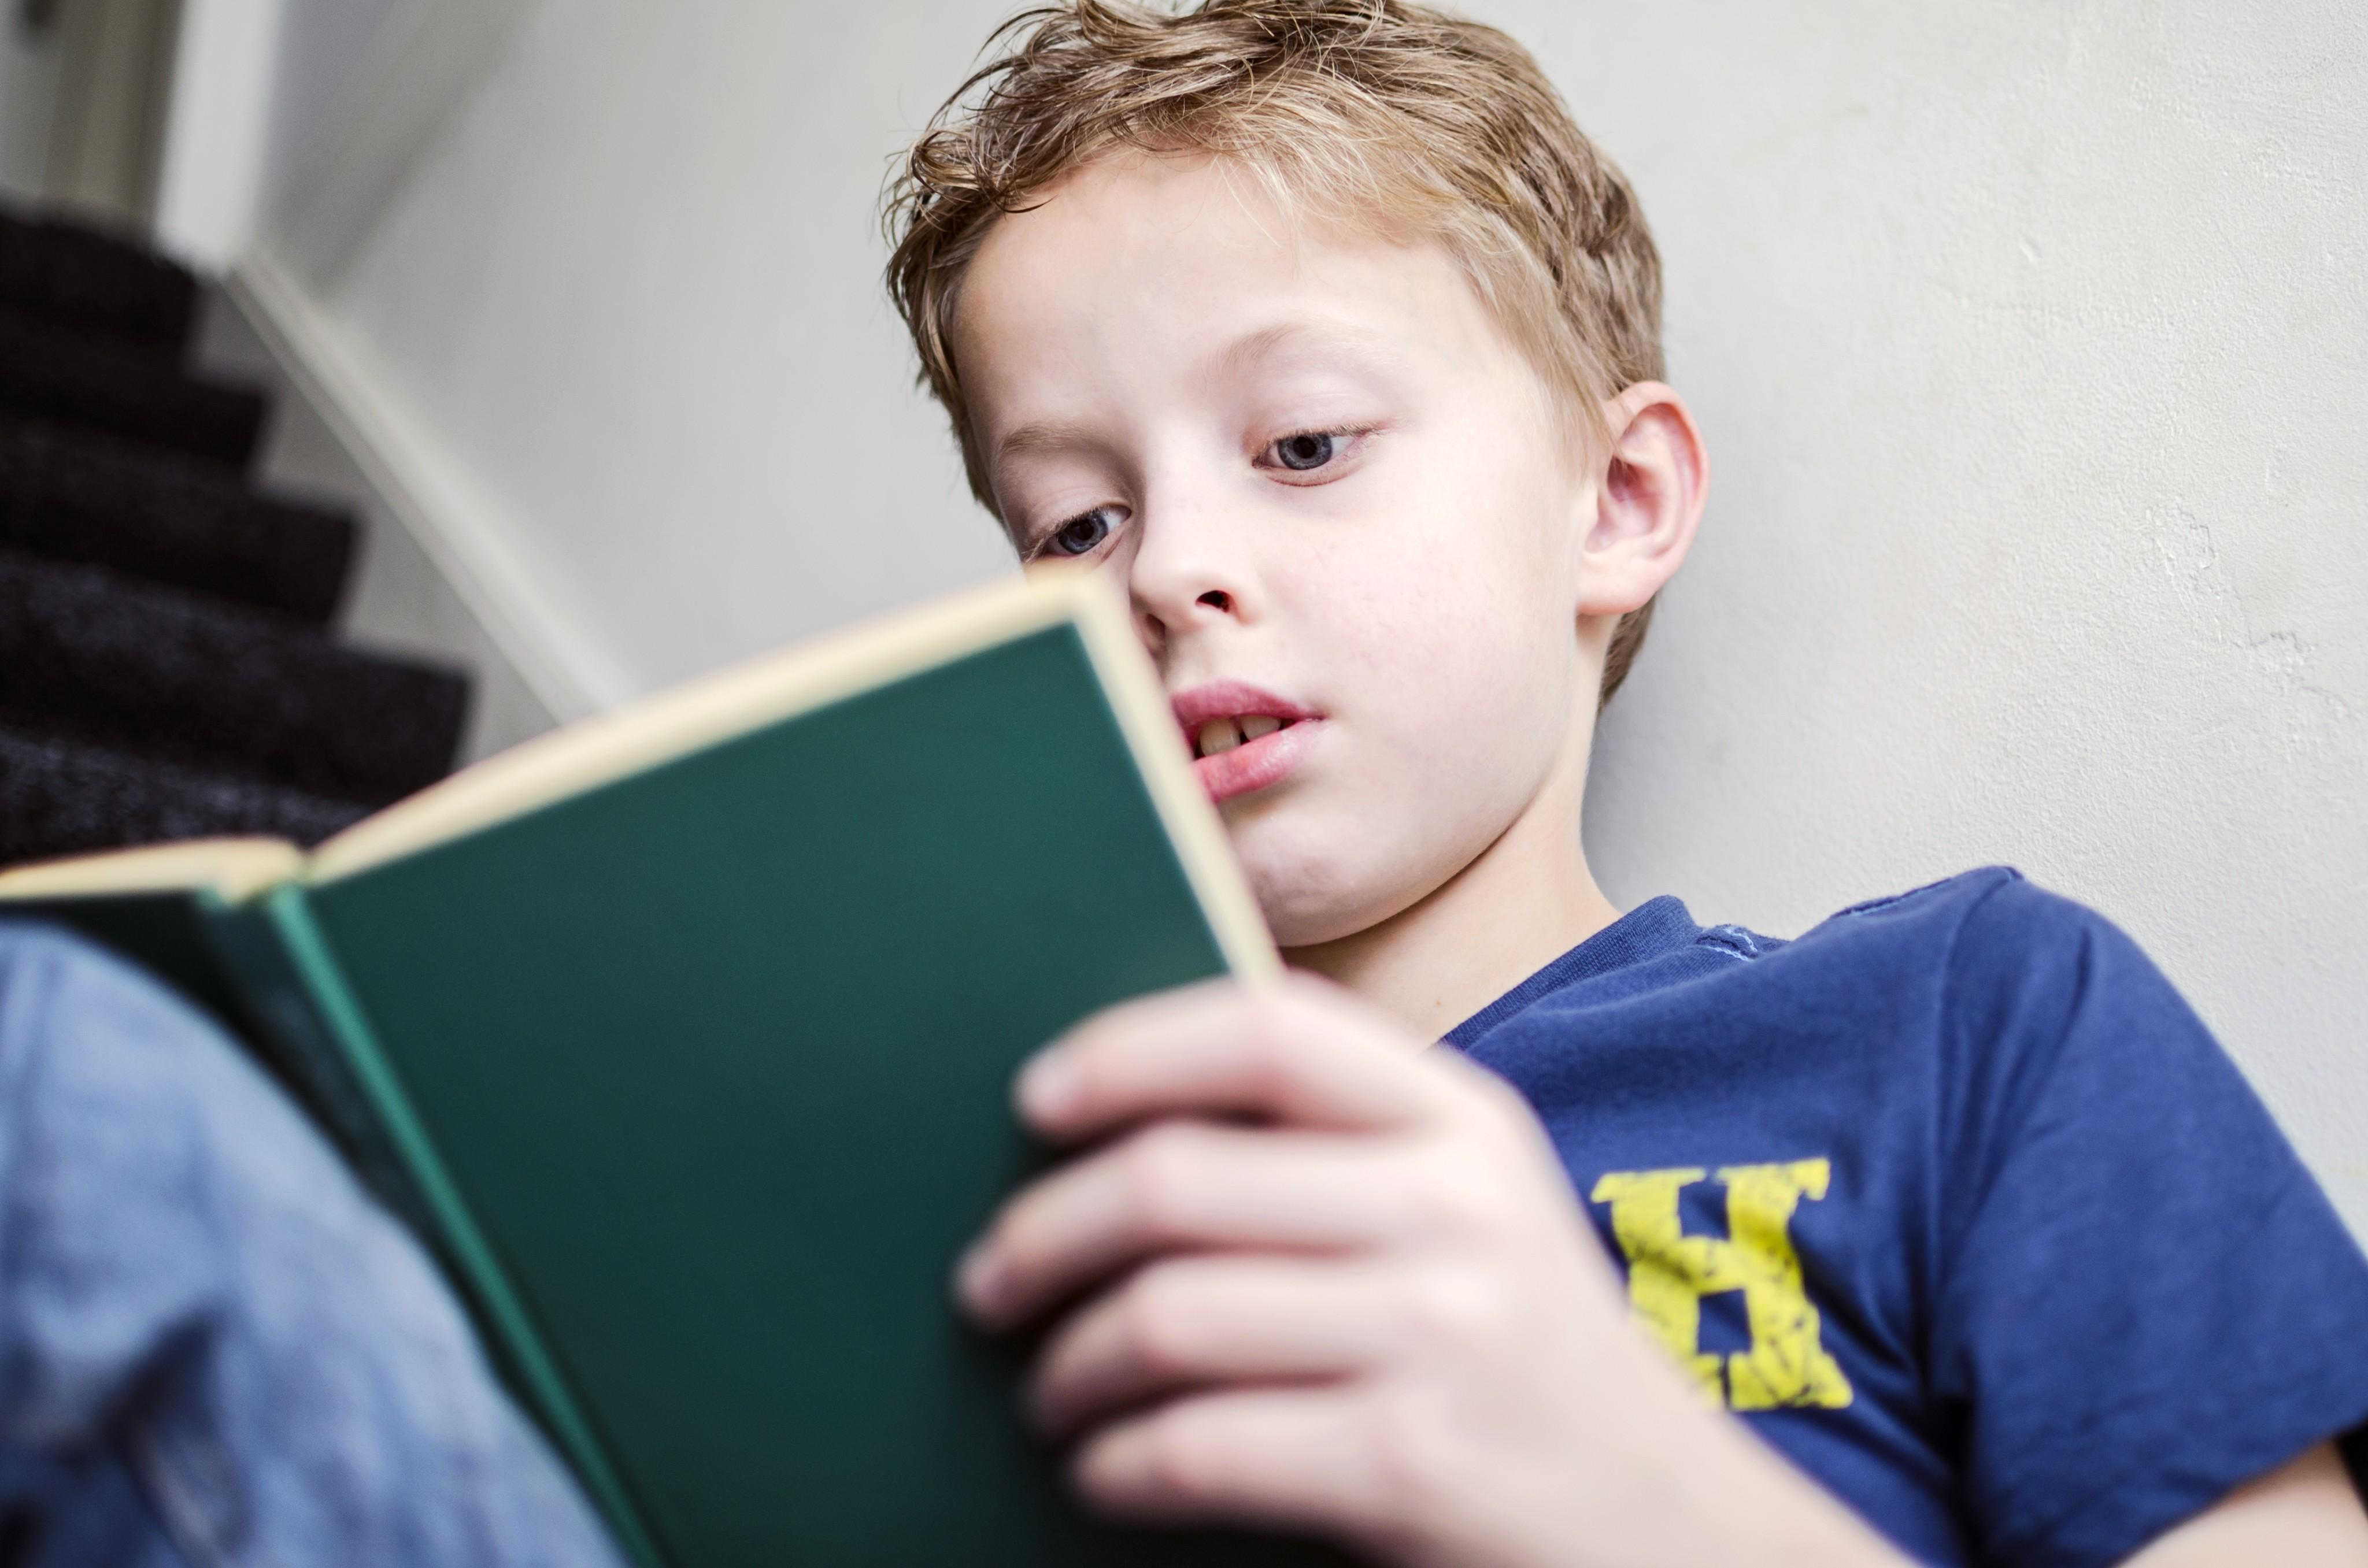 How to Improve Reading Comprehension Skills